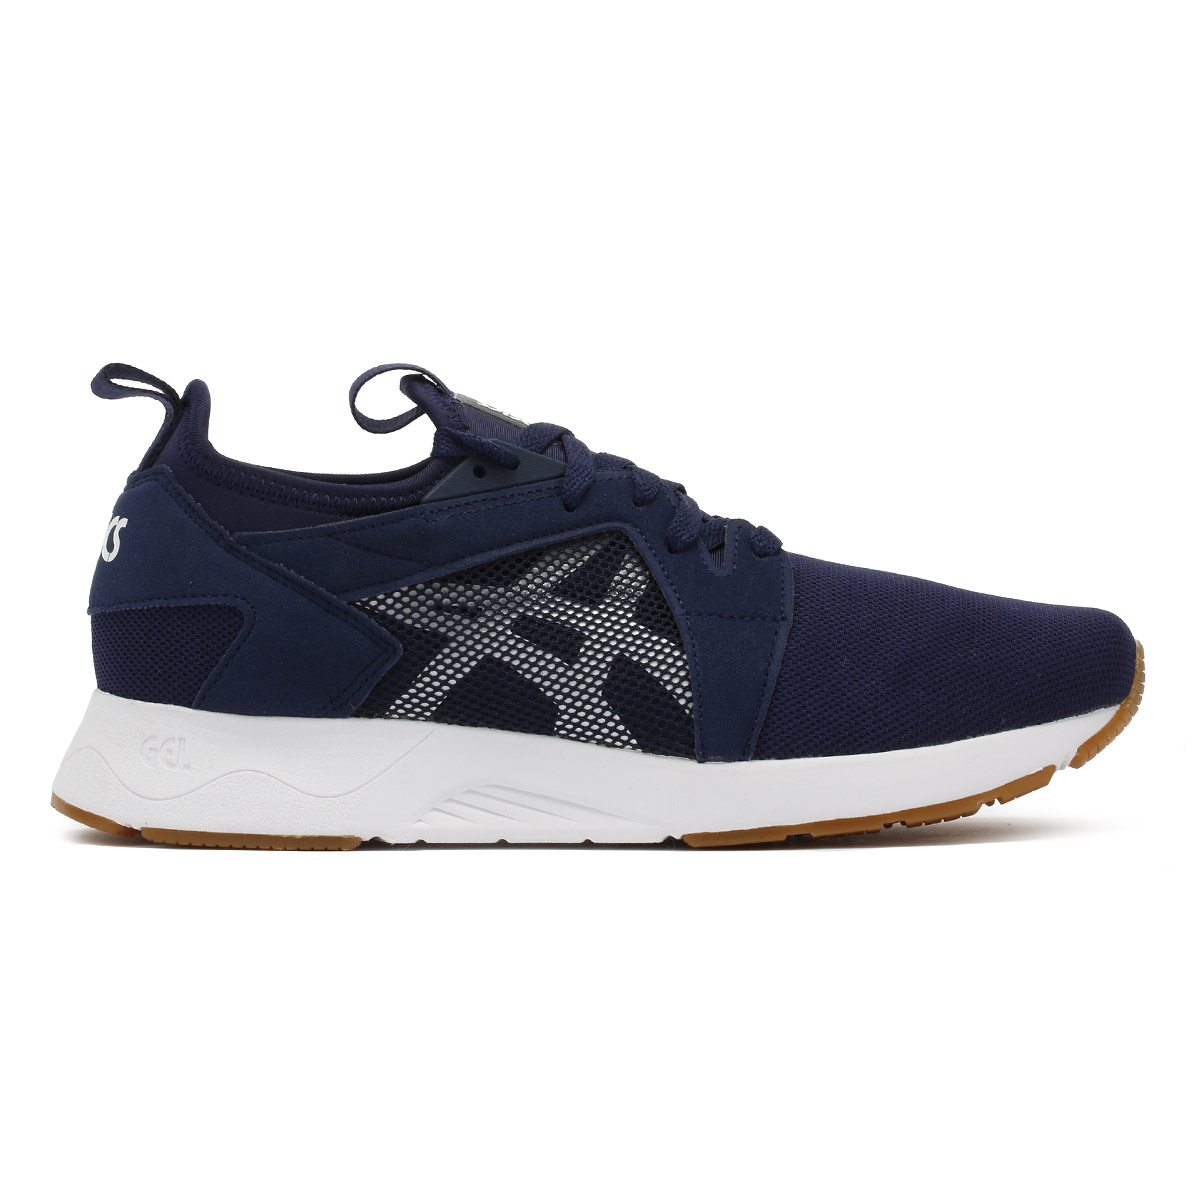 ASICS Mens Trainers Peacoat Lace Navy Gel-Lyte V RB Lace Peacoat Up Sport Casual Schuhes 7a588a